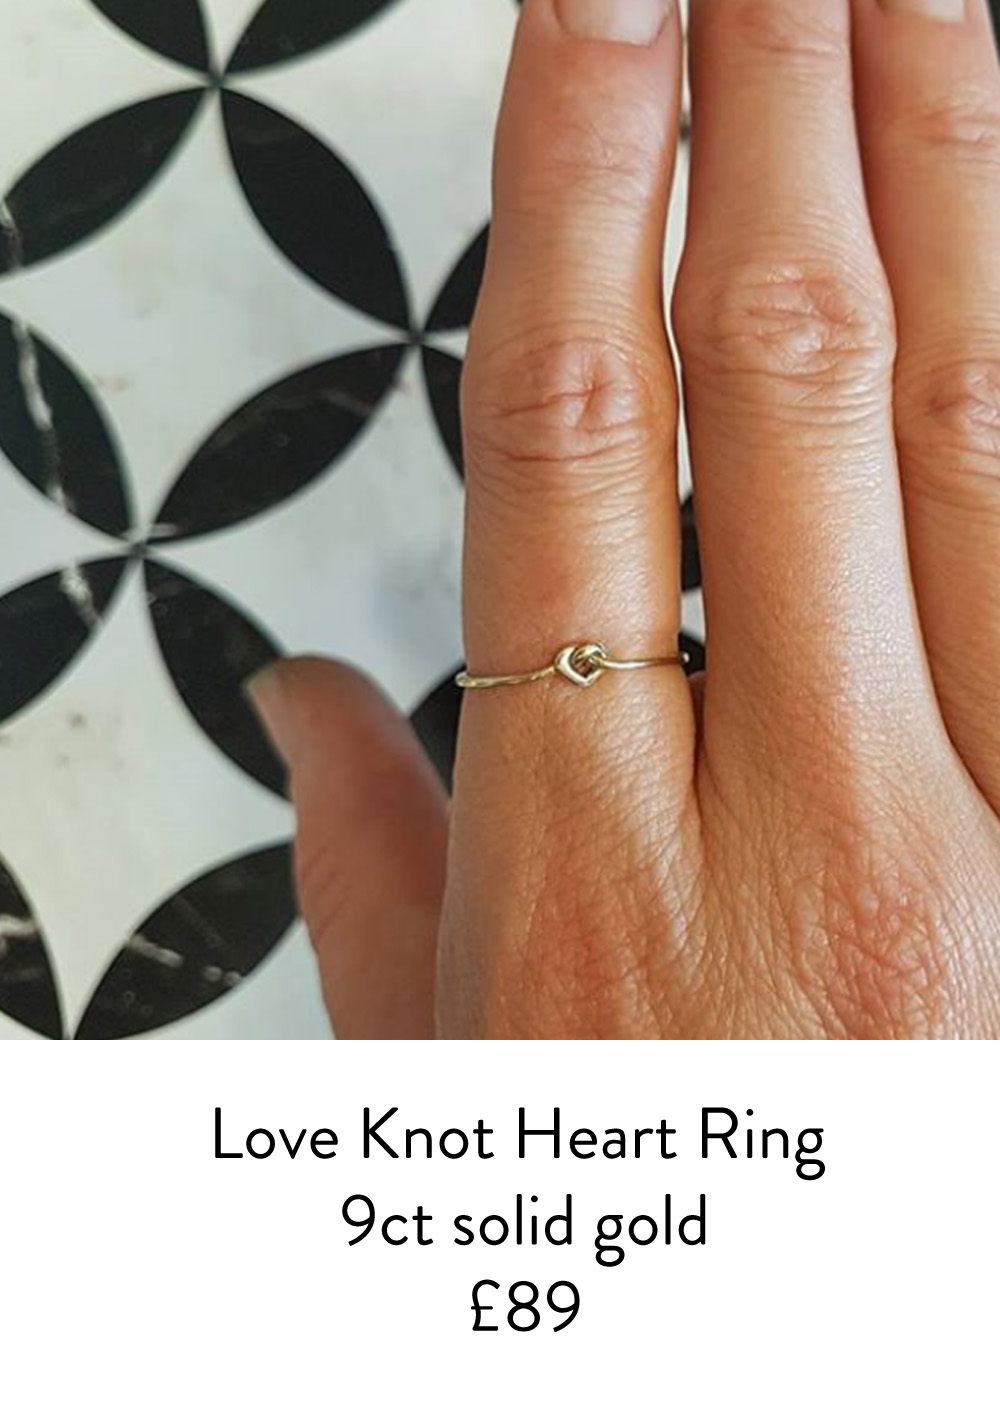 love knot heart ring